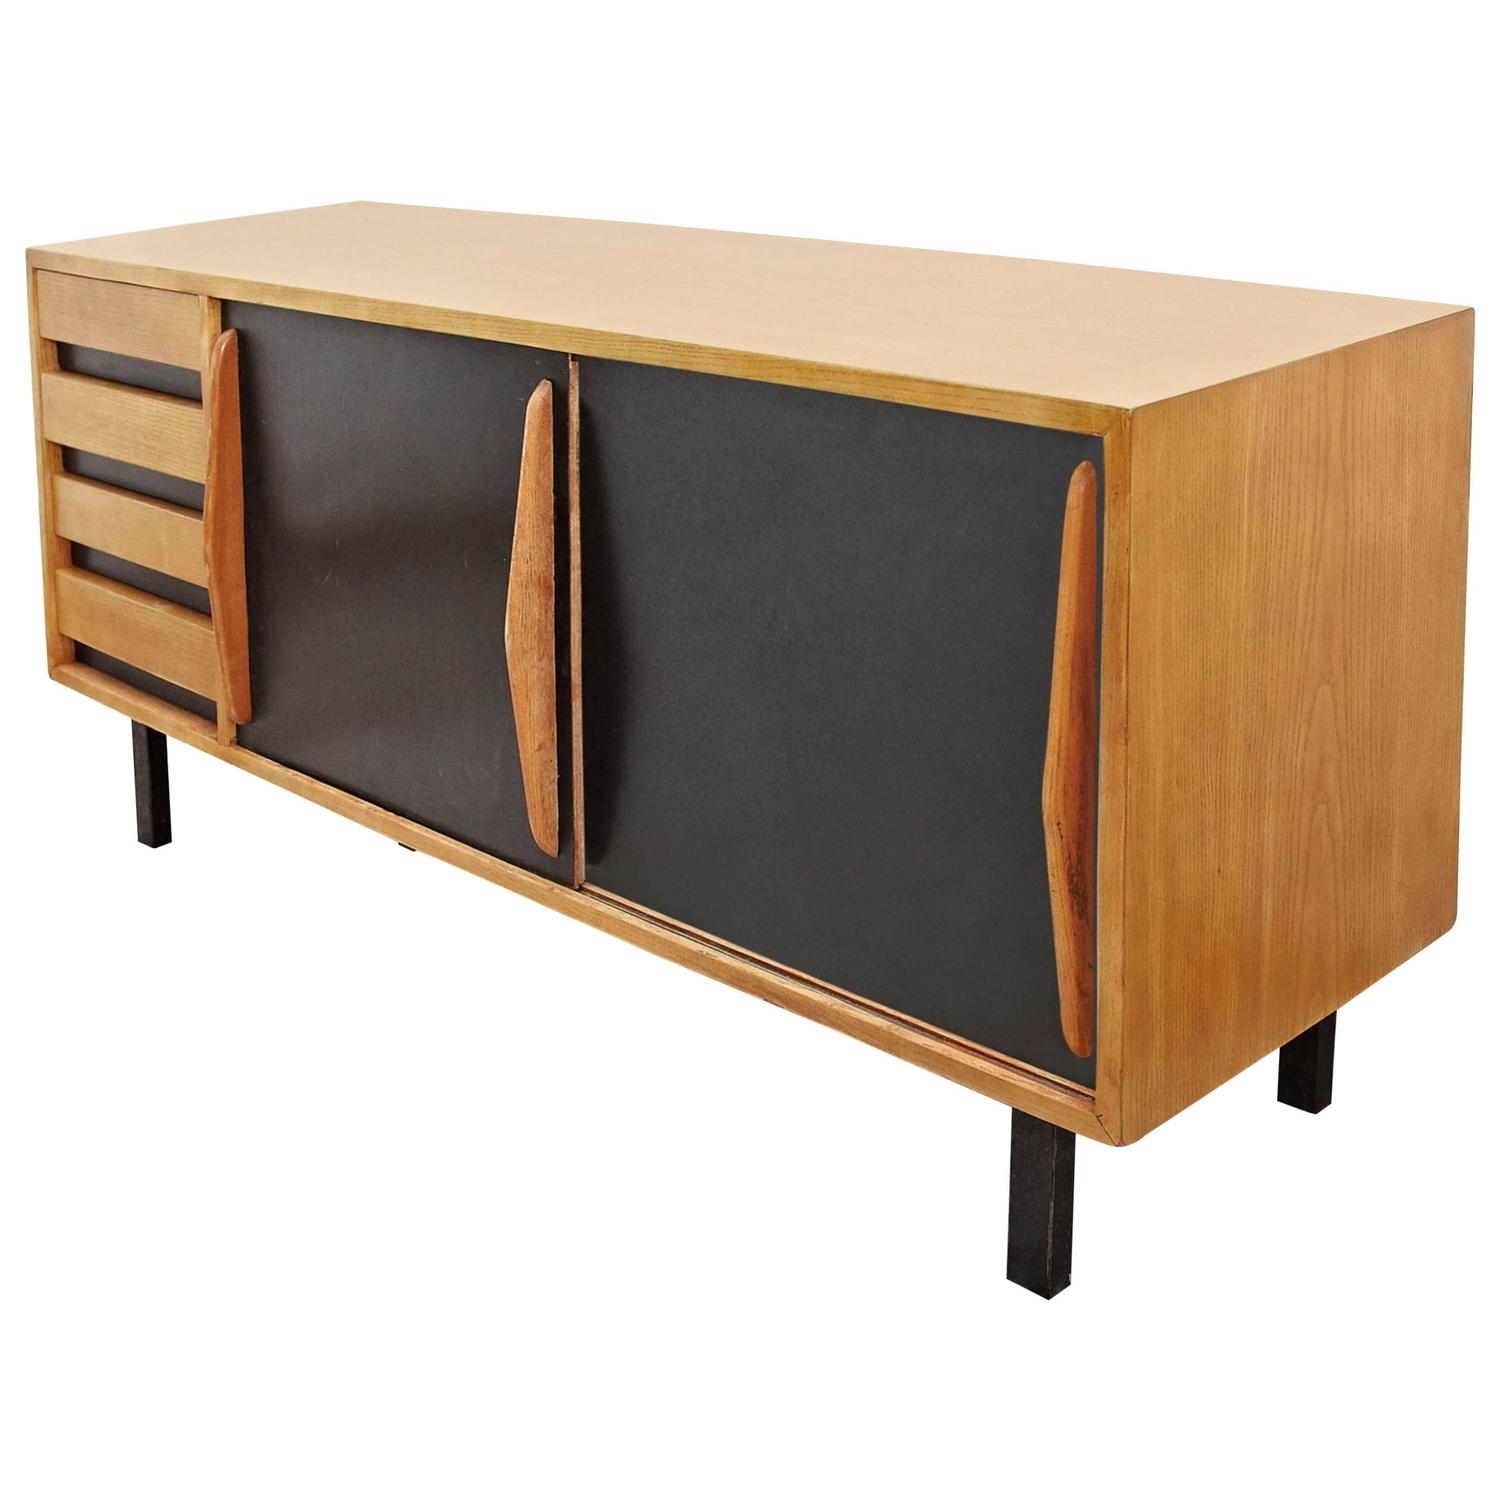 Charlotte perriand cansado sideboard circa 1950 at 1stdibs for Furniture 1950